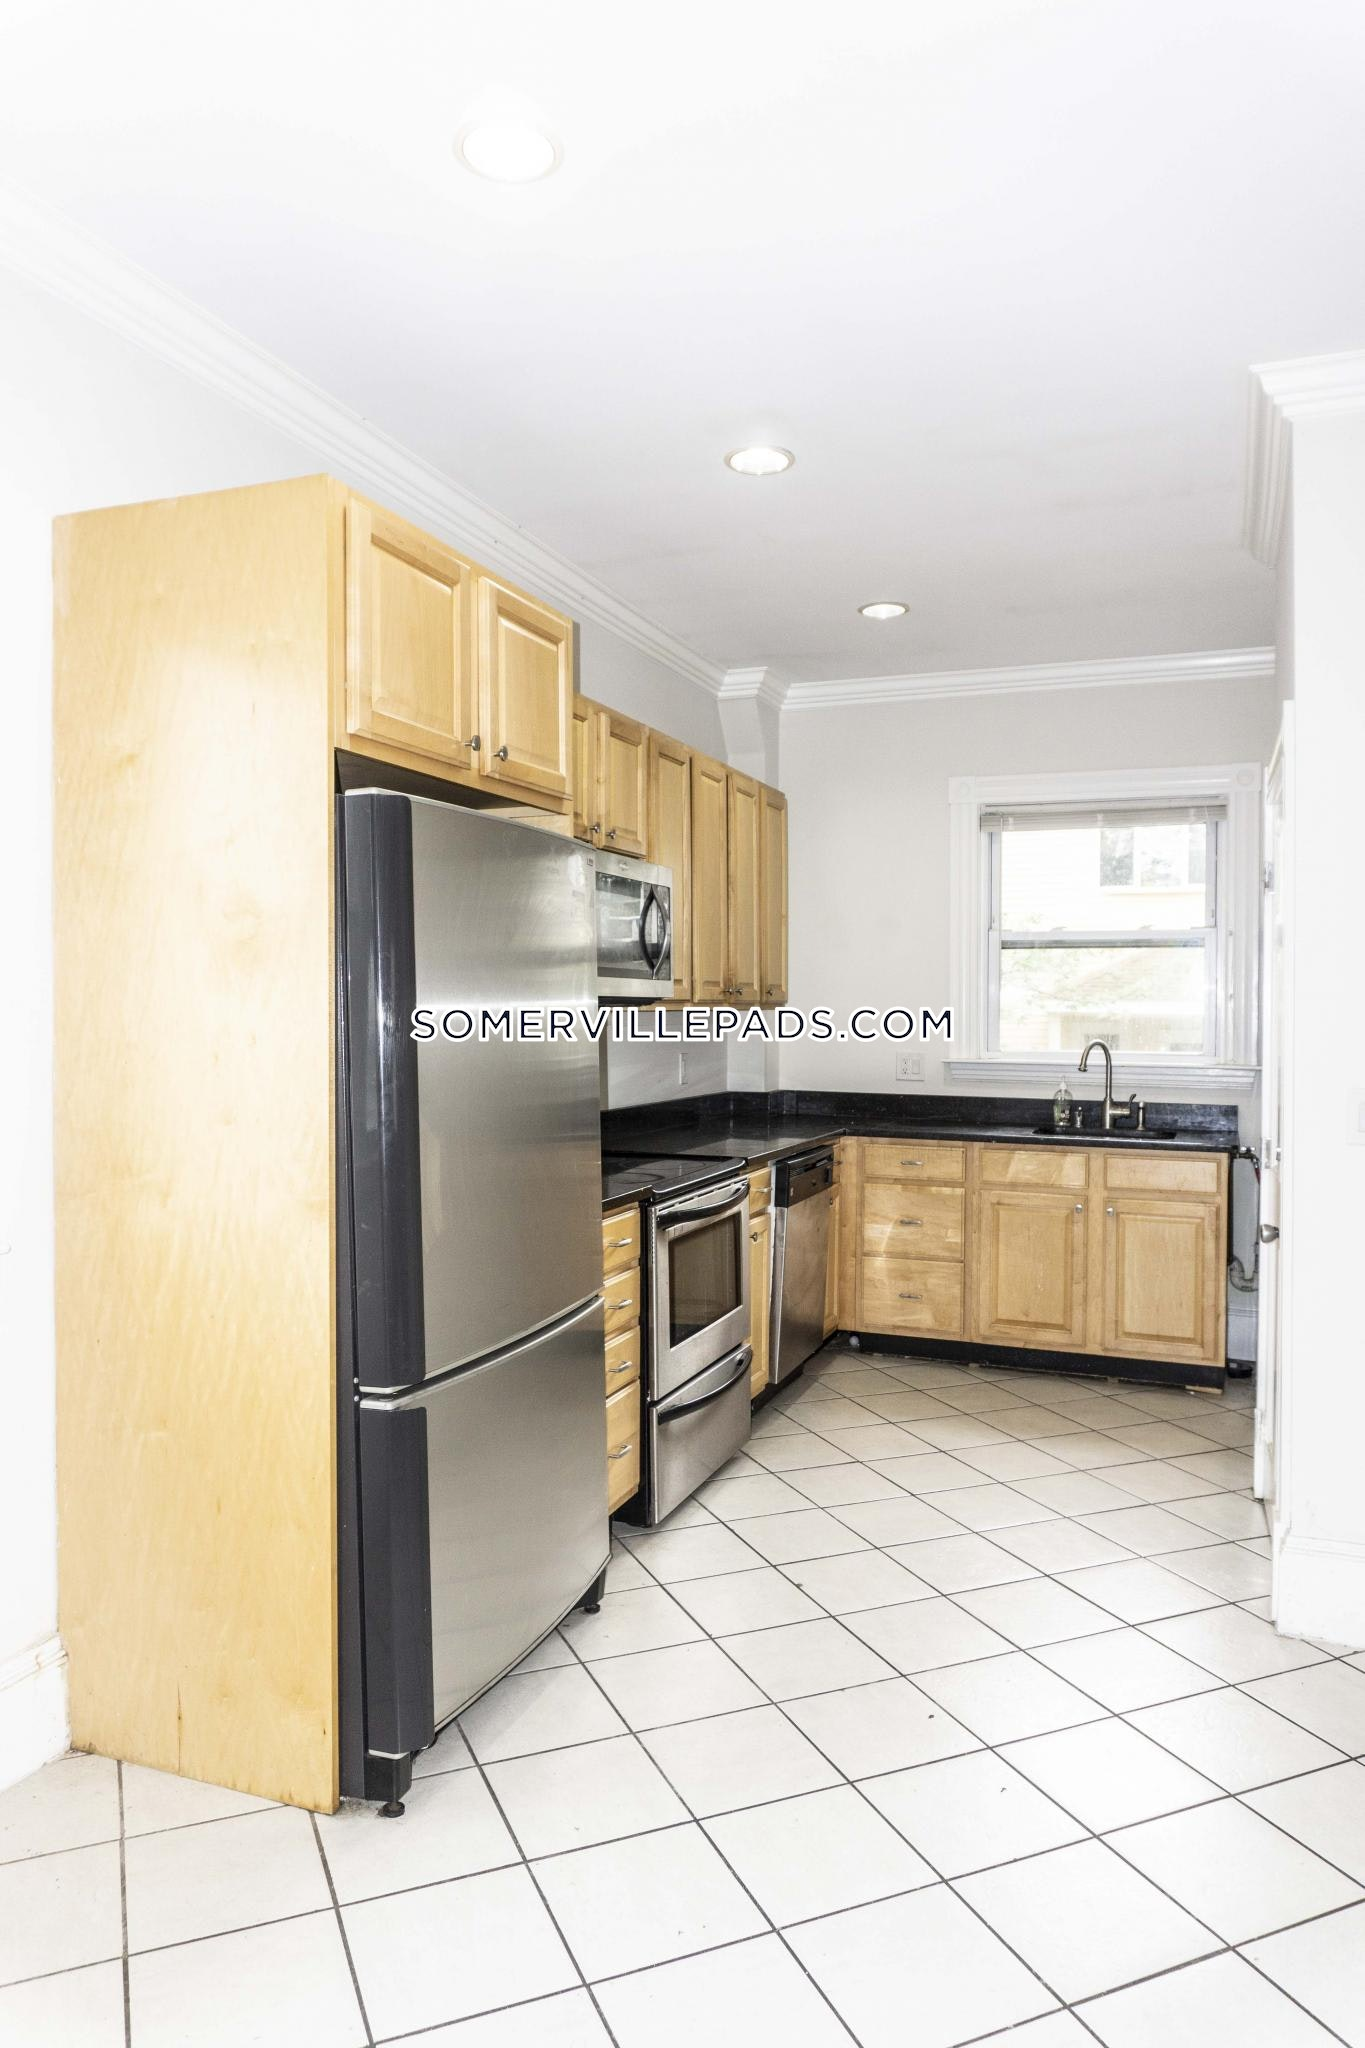 awesome-4-bed-available-near-somerville-junction-park-somerville-spring-hill-3900-449056